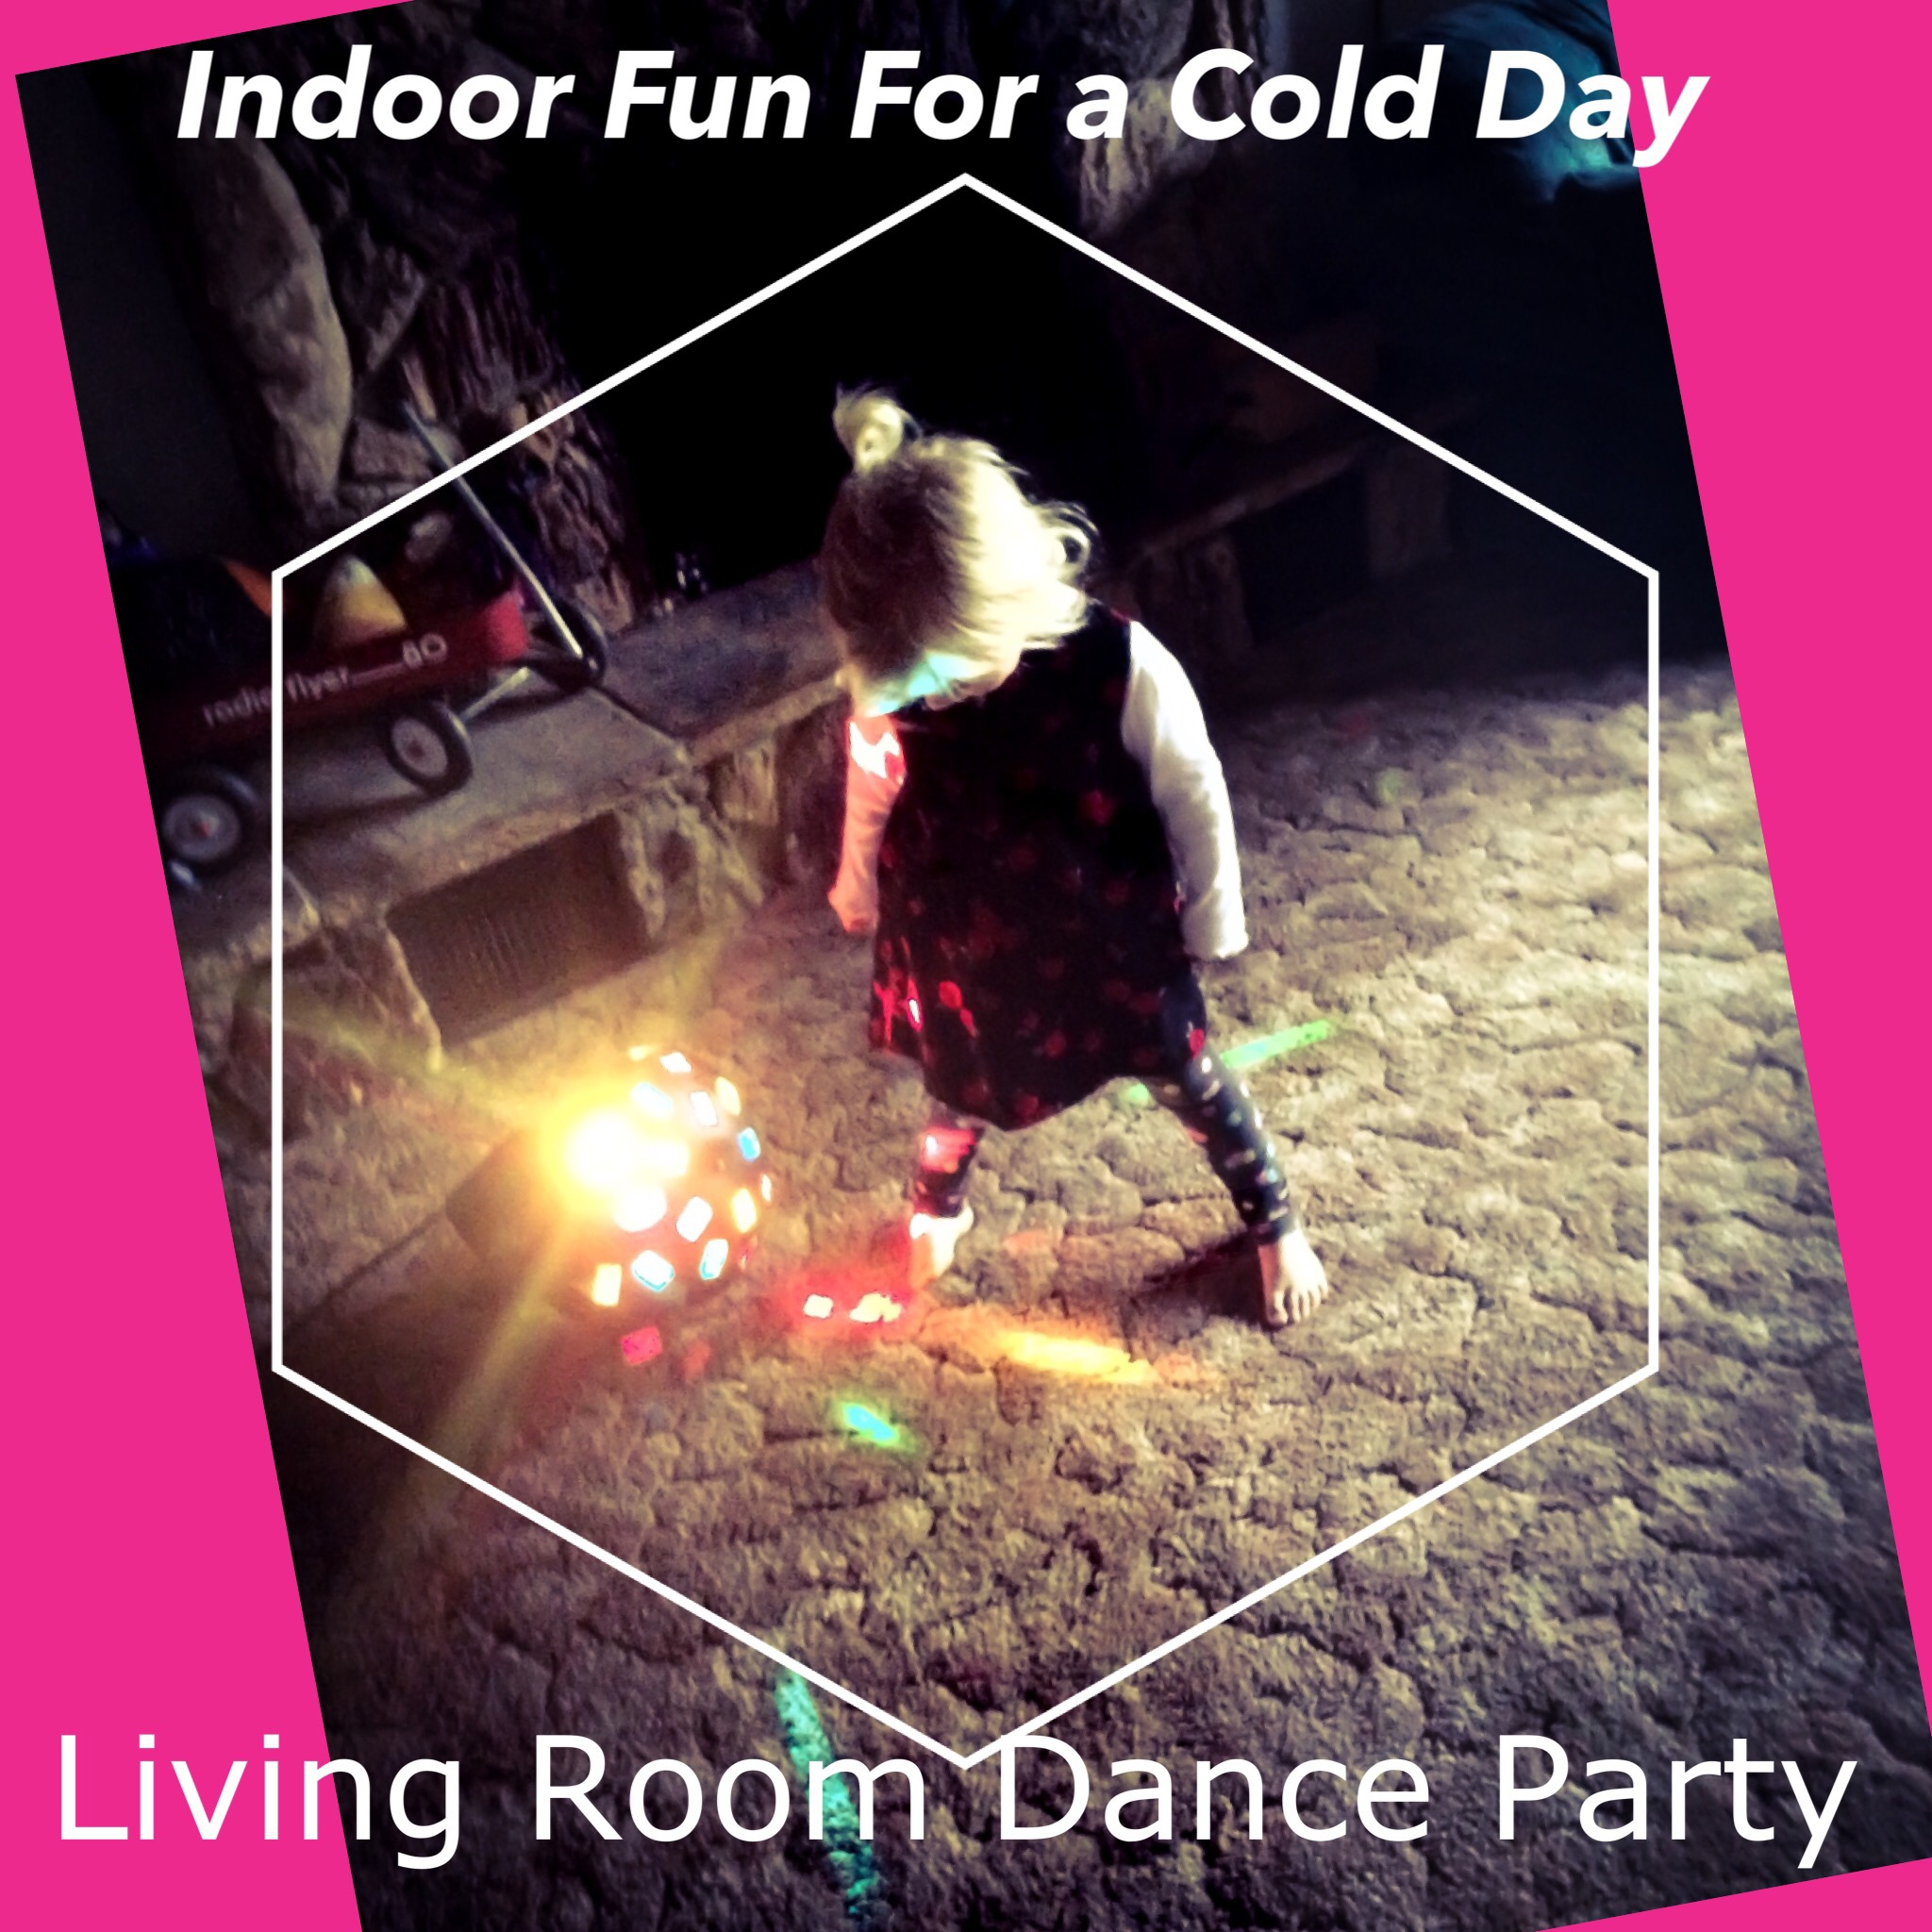 Indoor Fun For a Cold Day: Living Room Dance Party + Free Usher Download